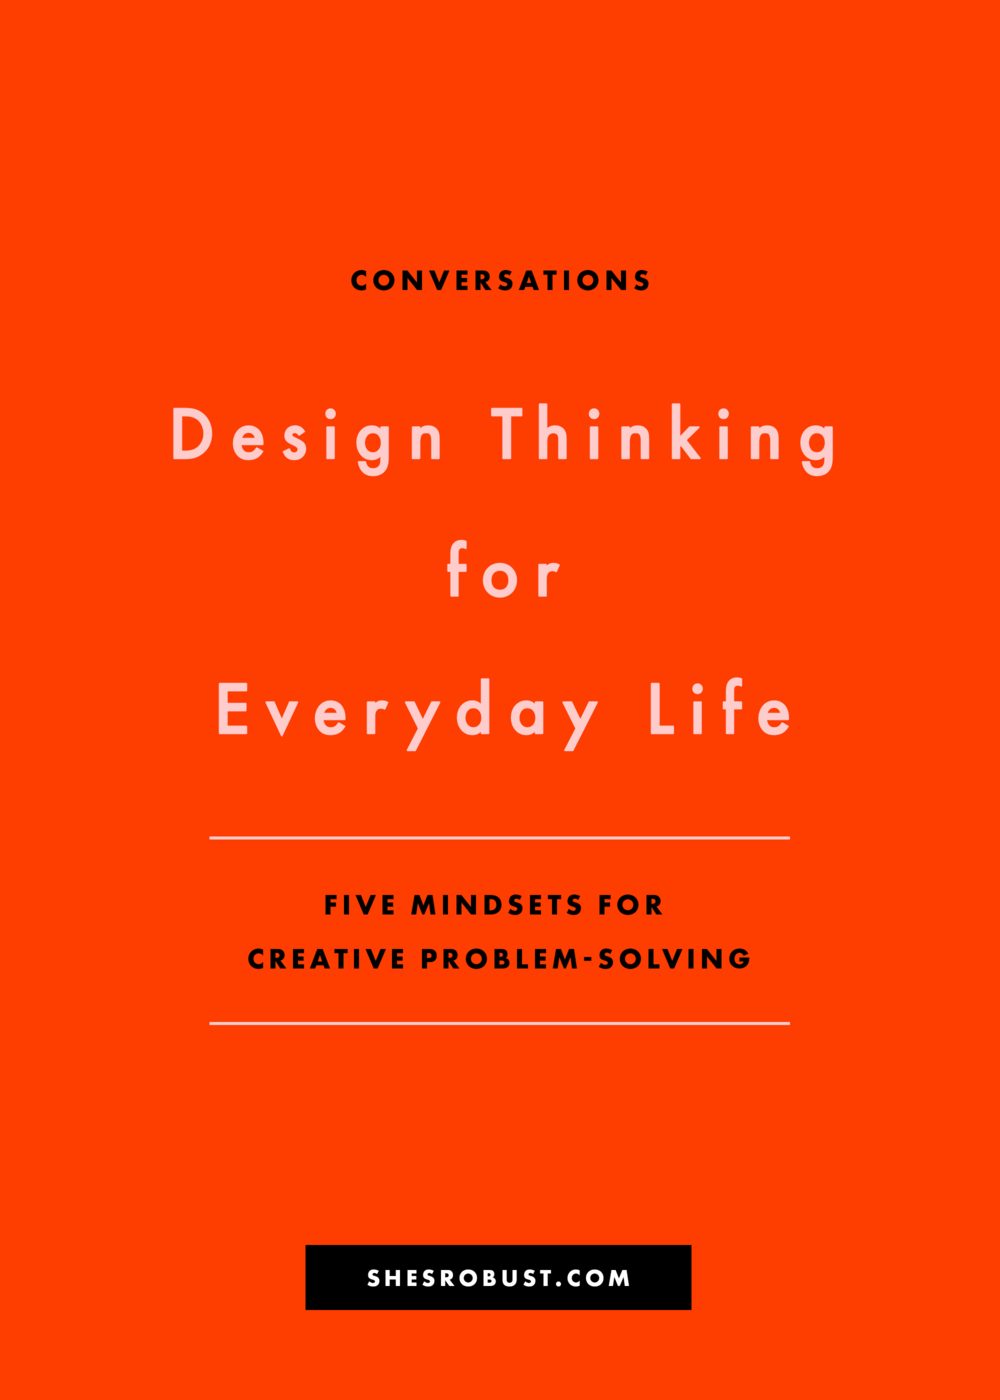 Thinking like a designer brings a fresh perspective to creative problem-solving